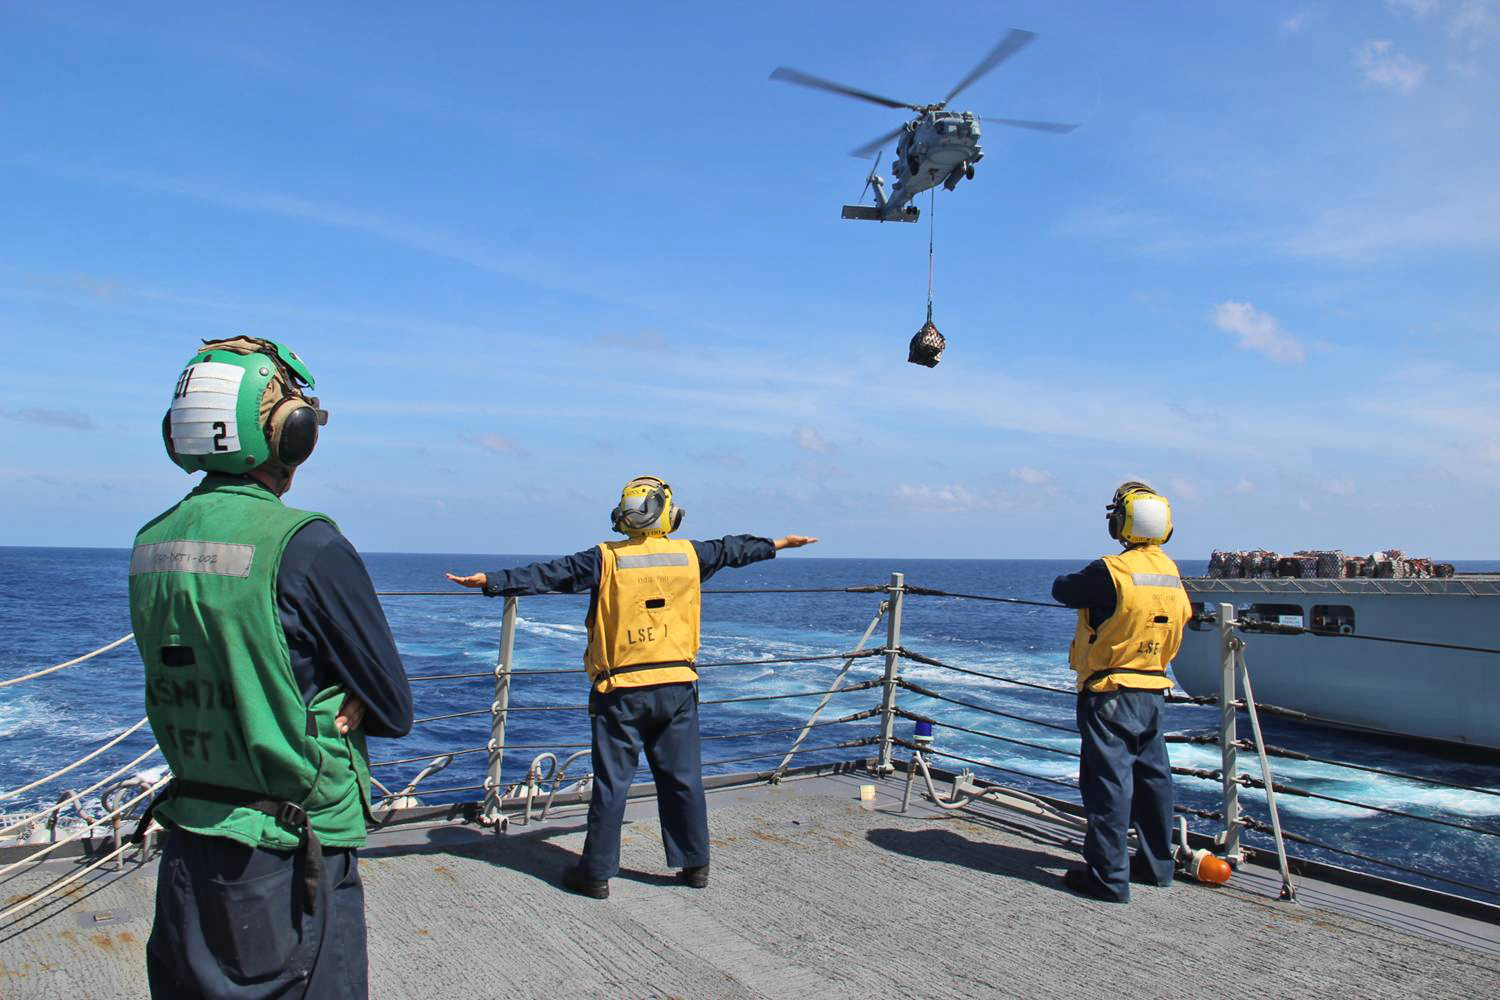 Crew on board USS Kidd searching for signs of MH370 in the Andaman Sea, a part of the Indian Ocean